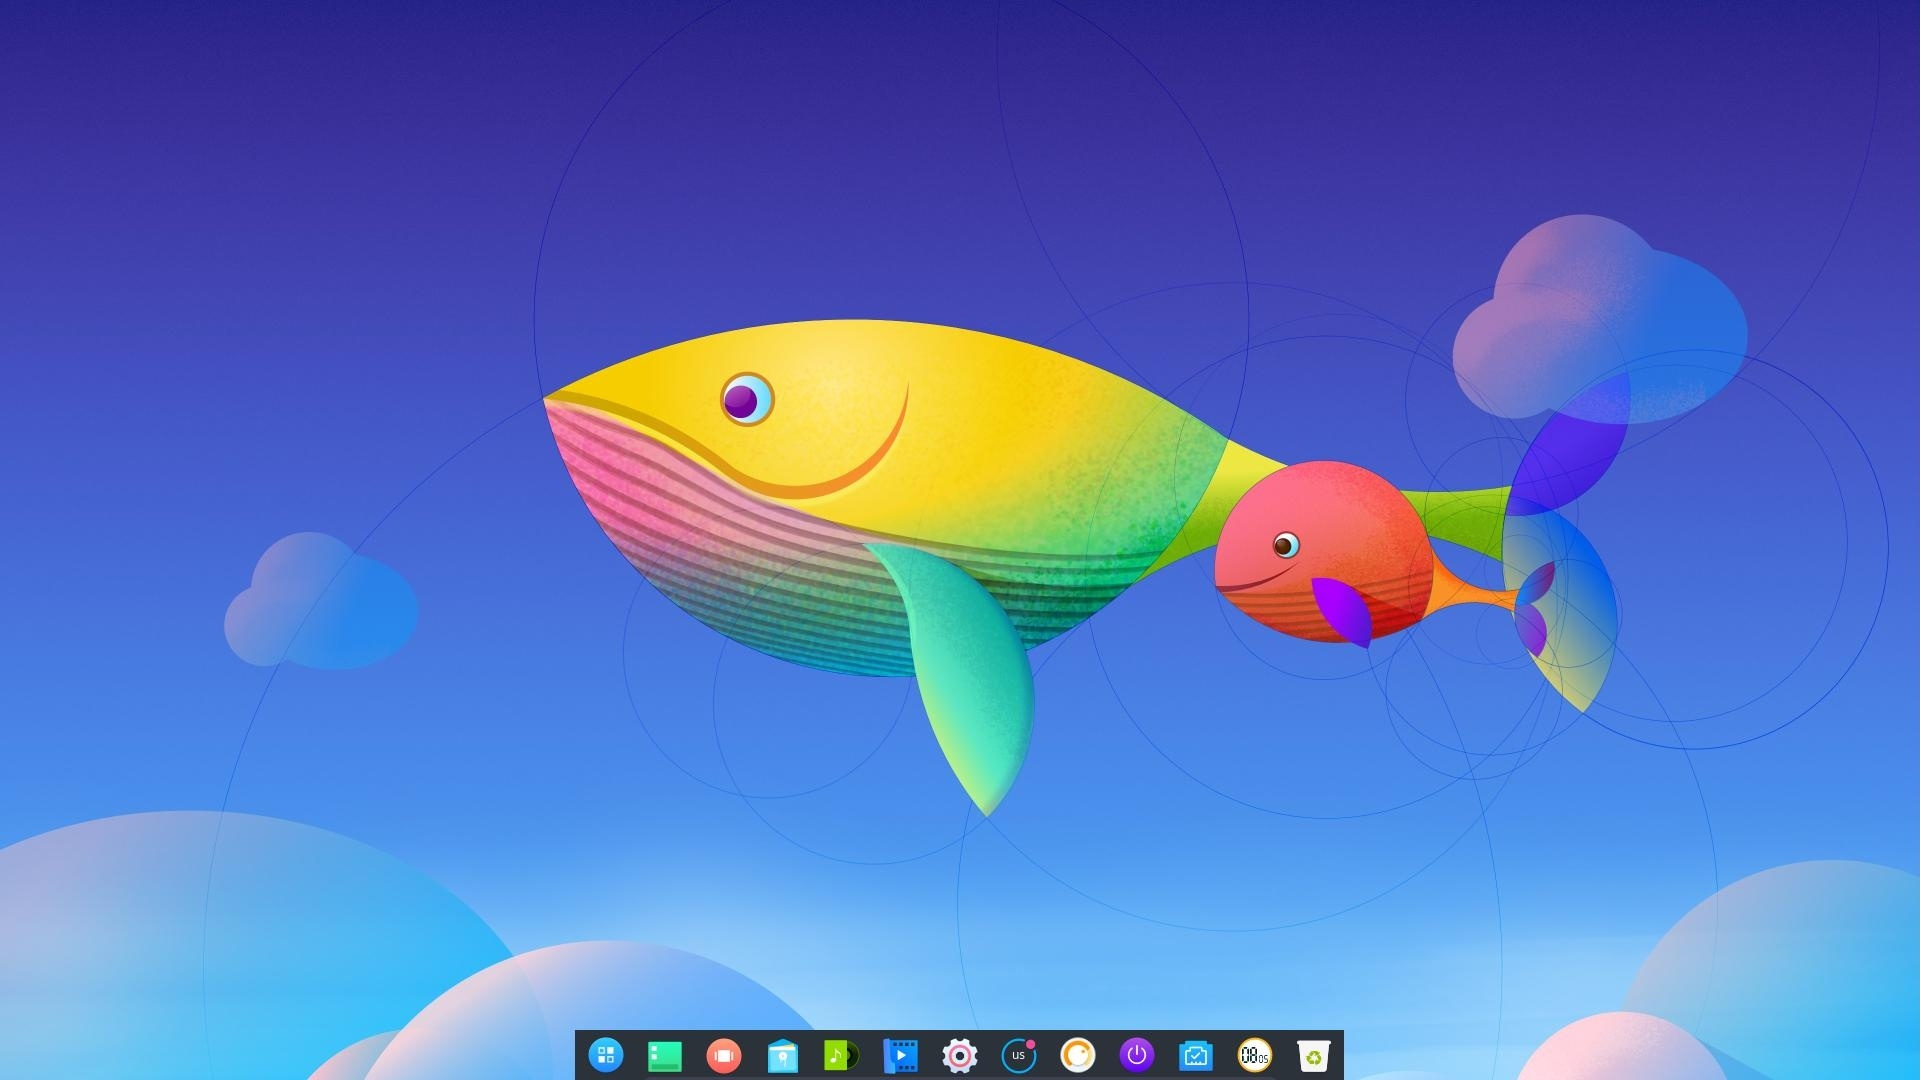 Installation of Deepin on Arch Linux Phase 4